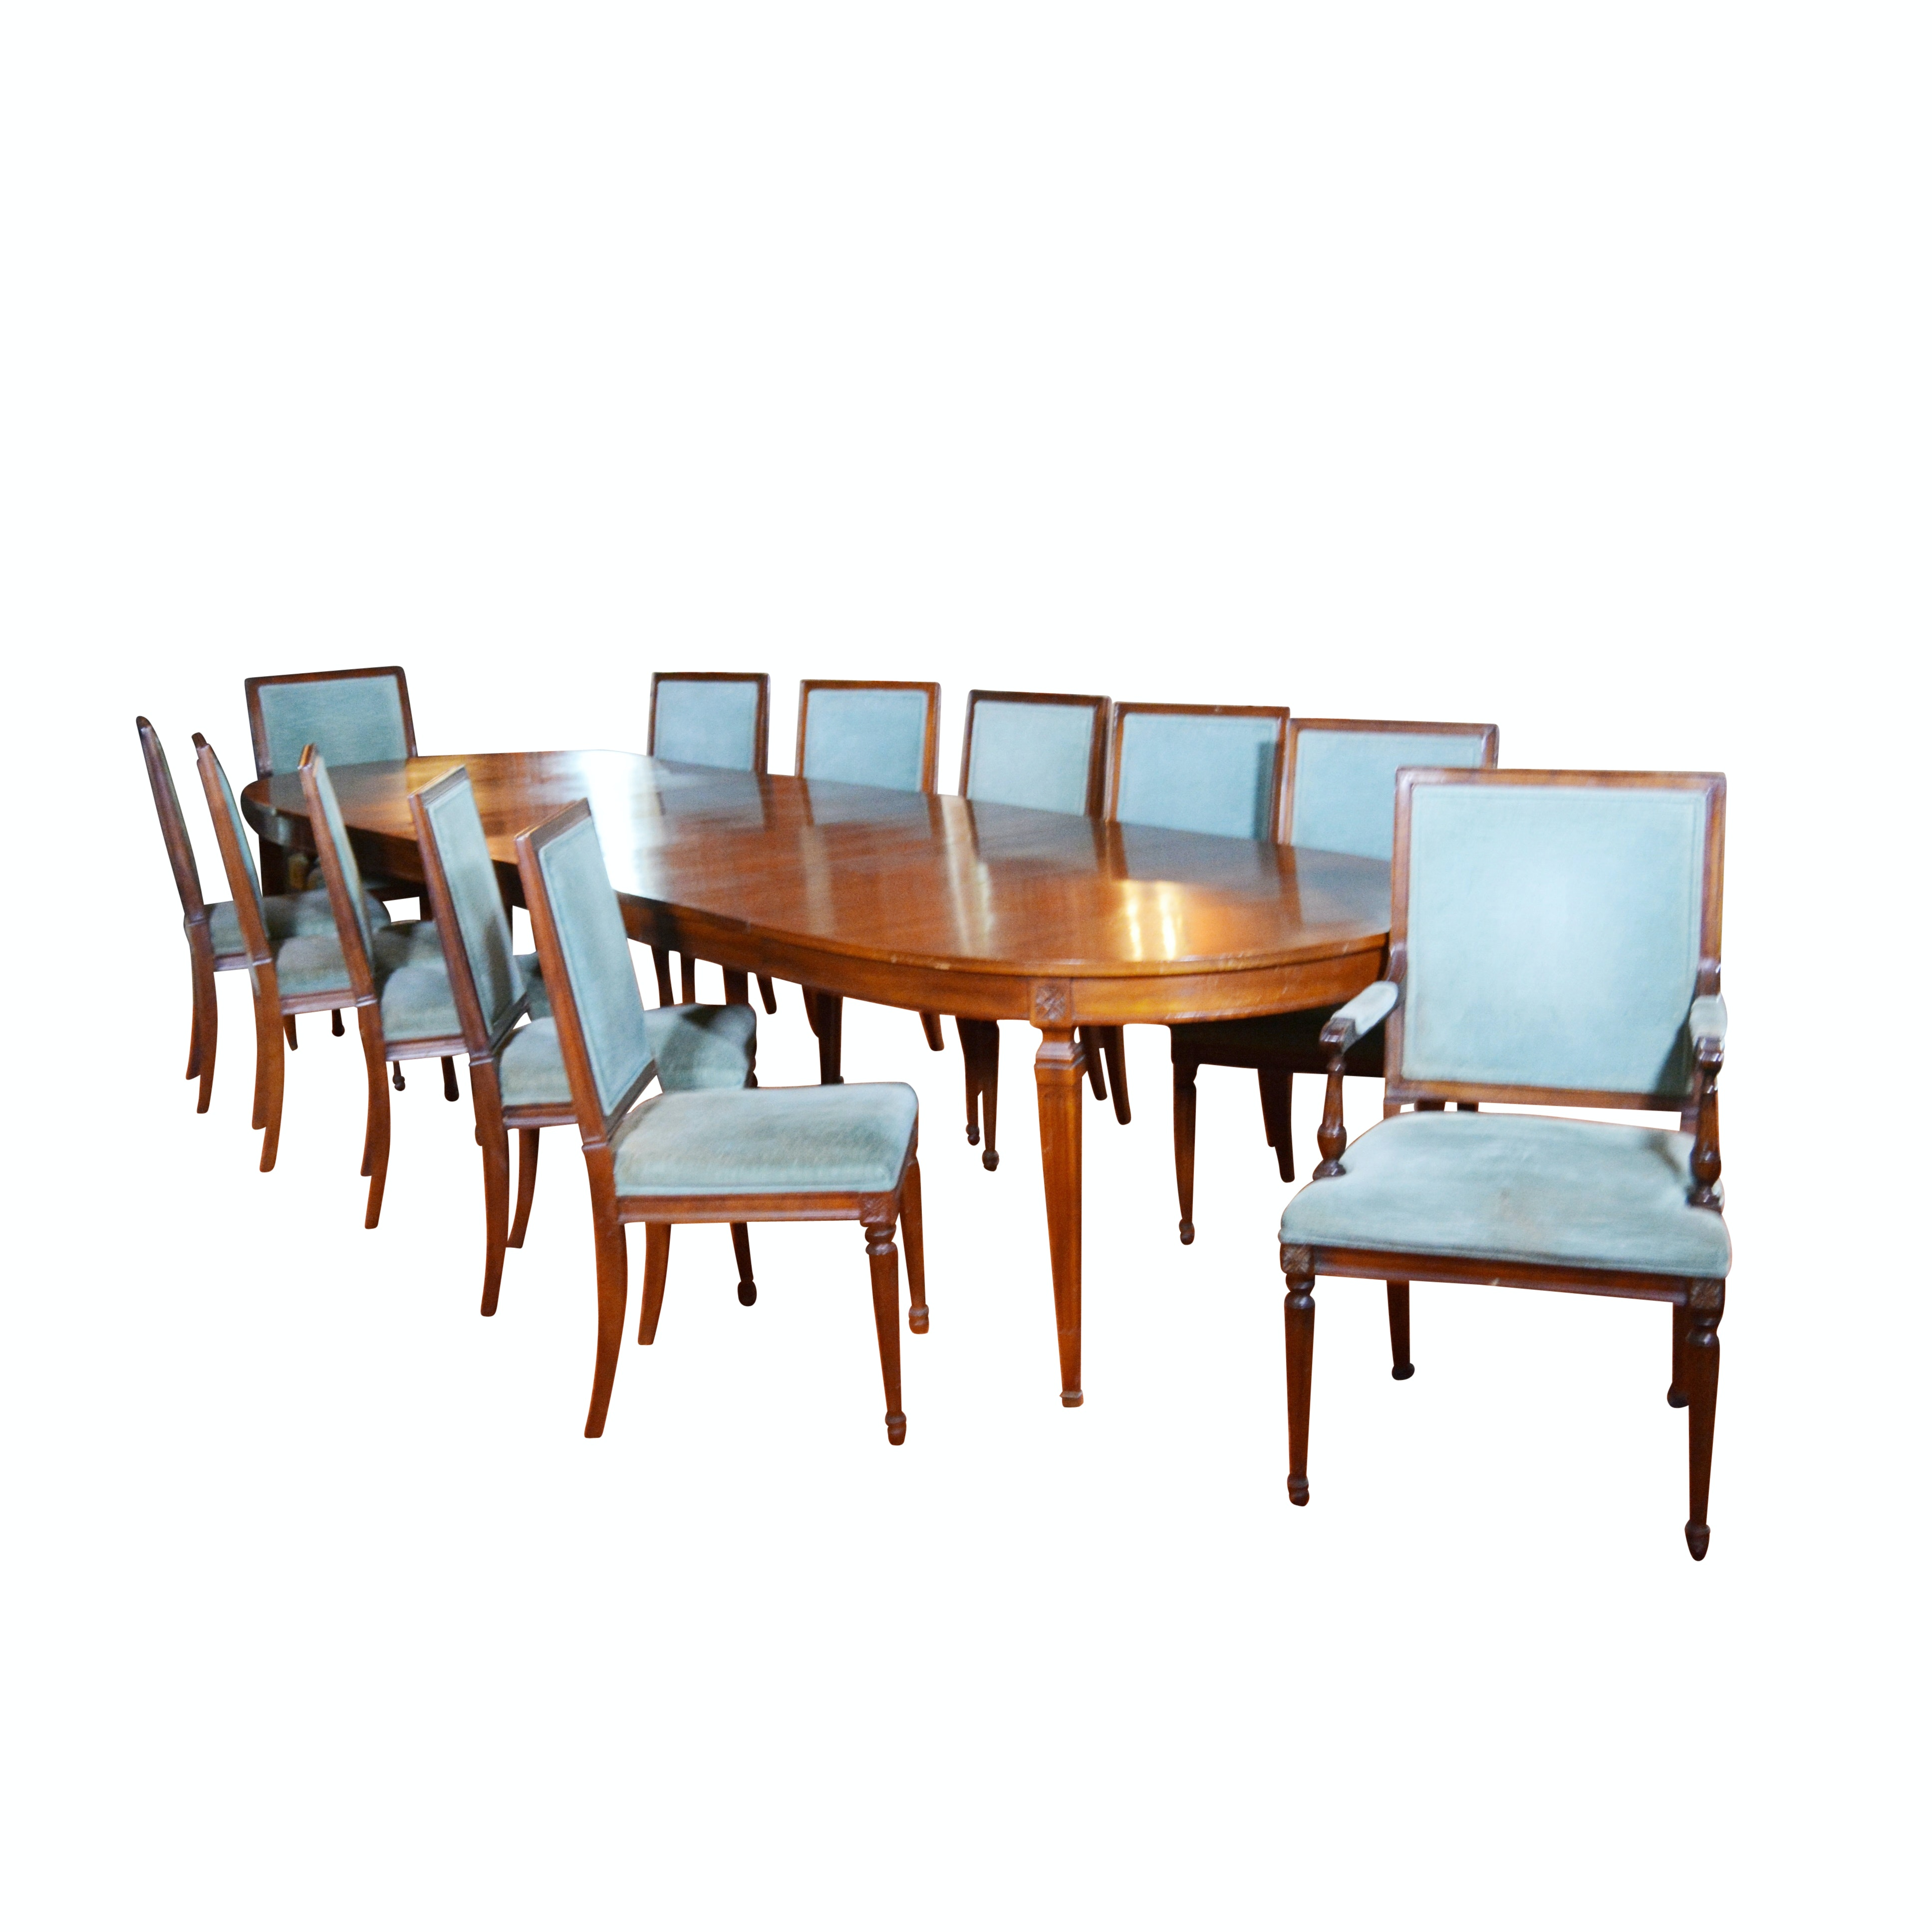 Federal Style Dining Room Table and Chairs by Kindel Furniture, Mid-20th Century